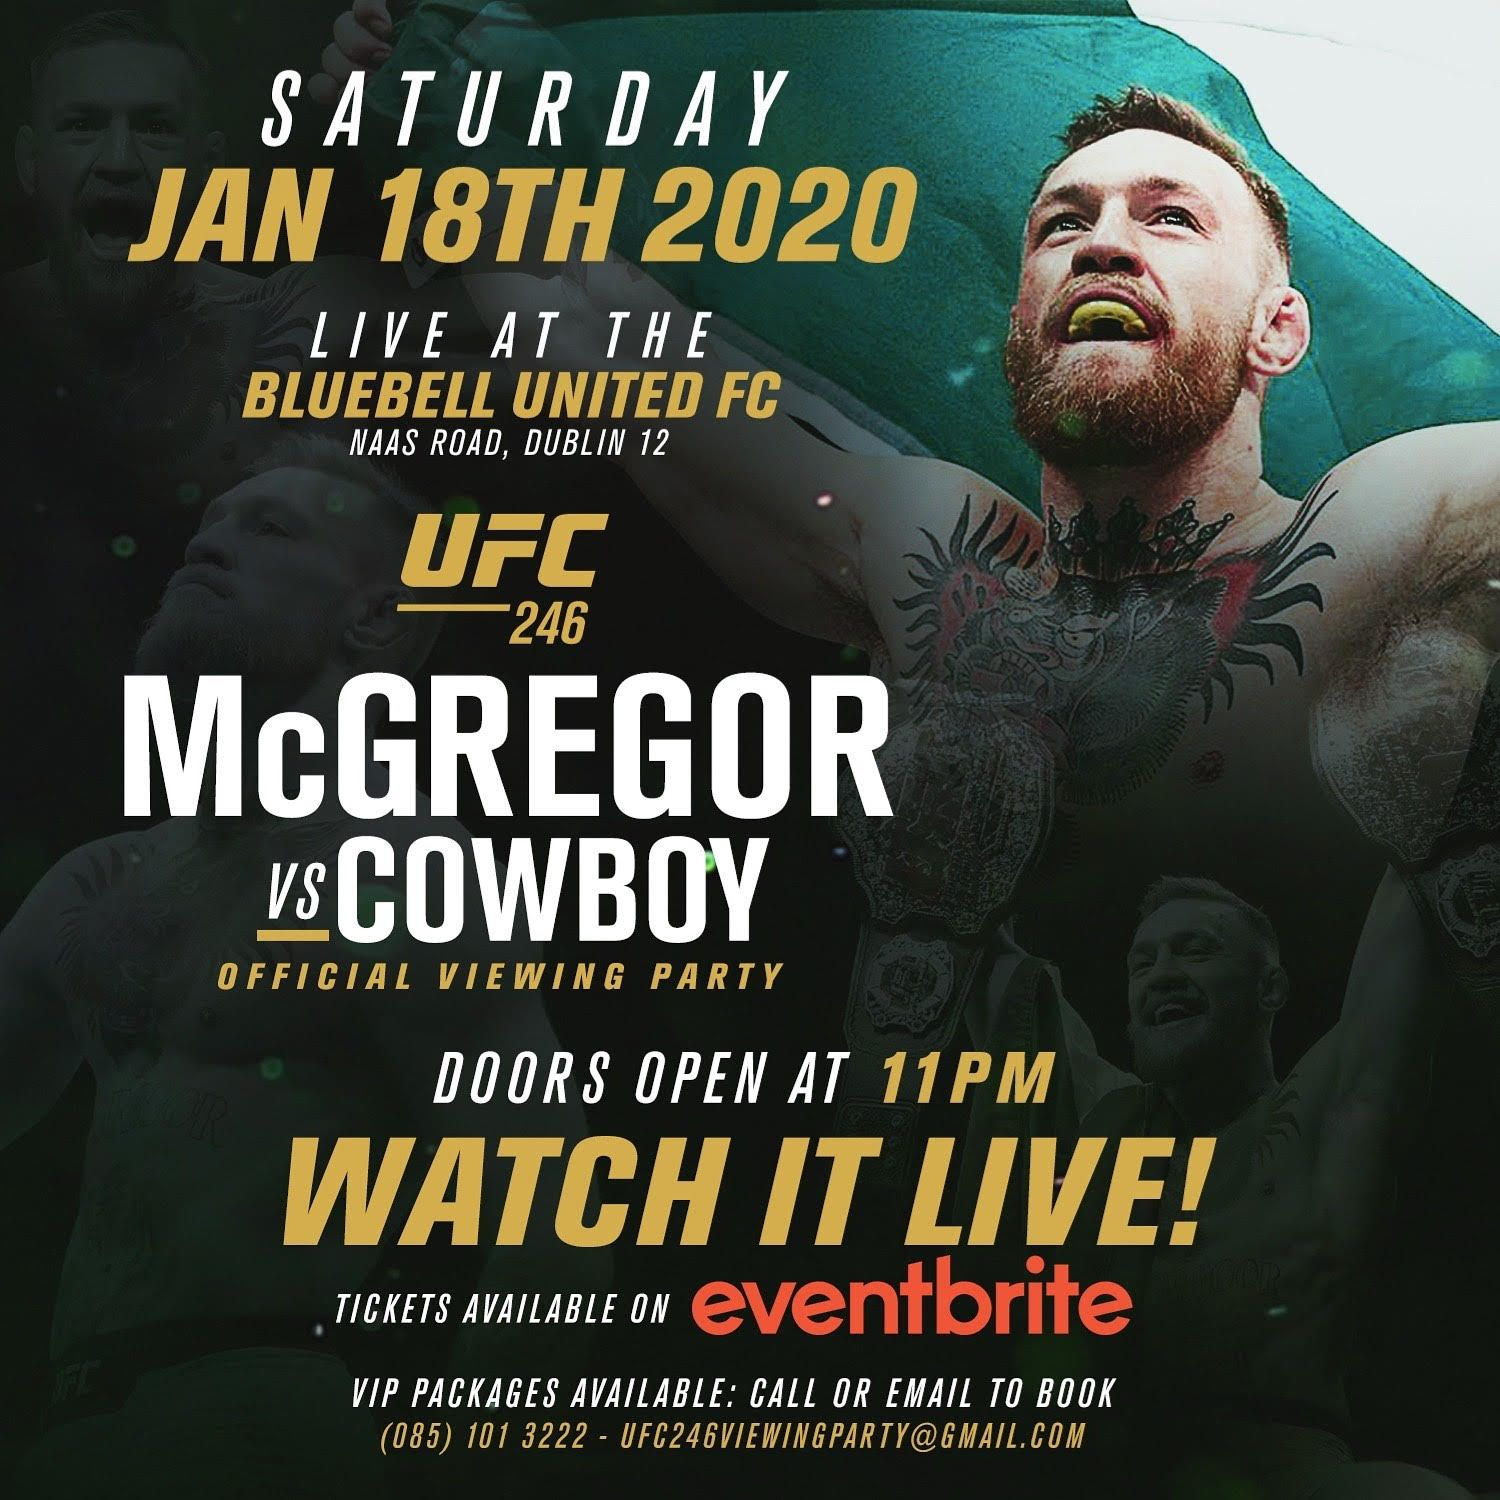 UFC 246 viewing party